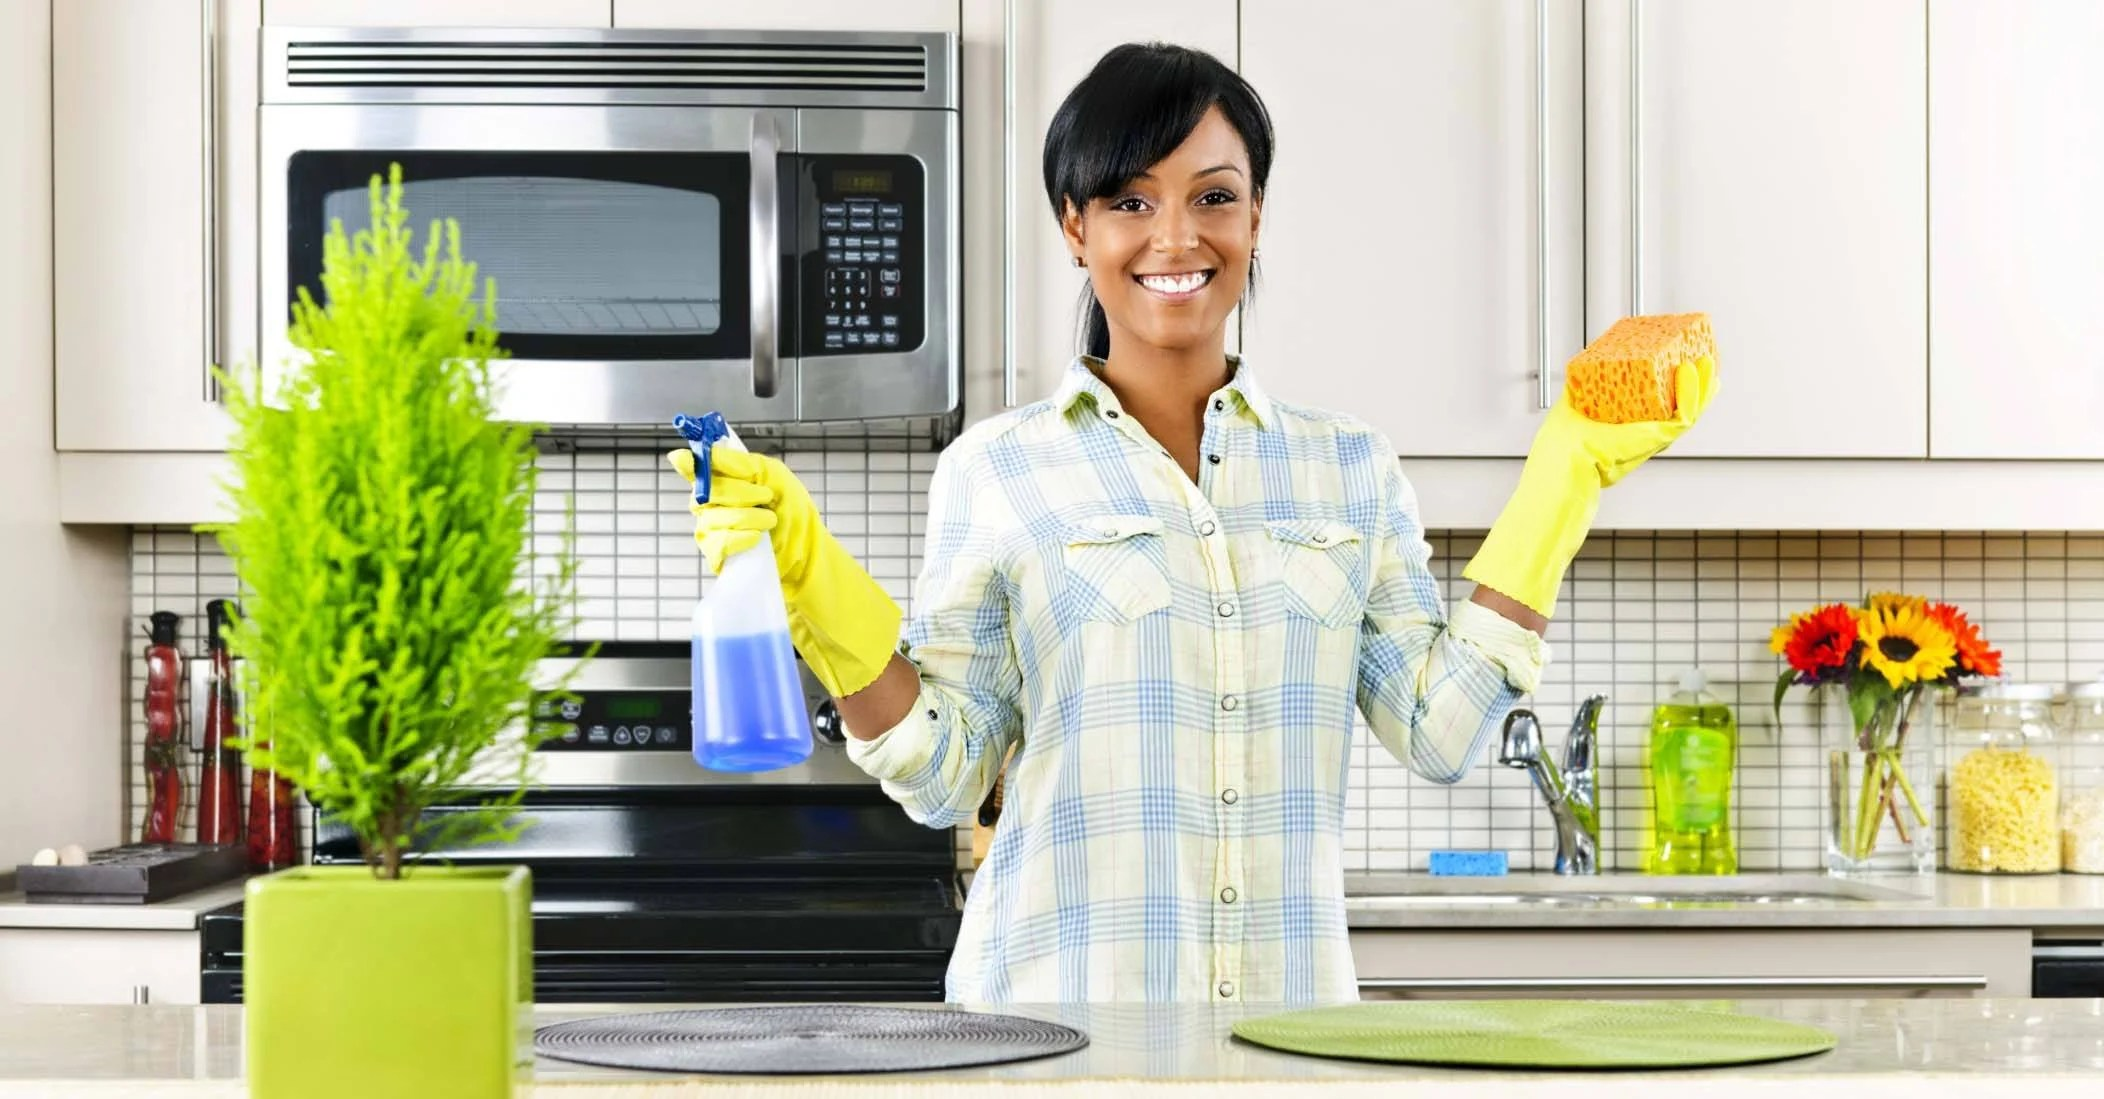 Image result for PHOTOS OF CLEANING